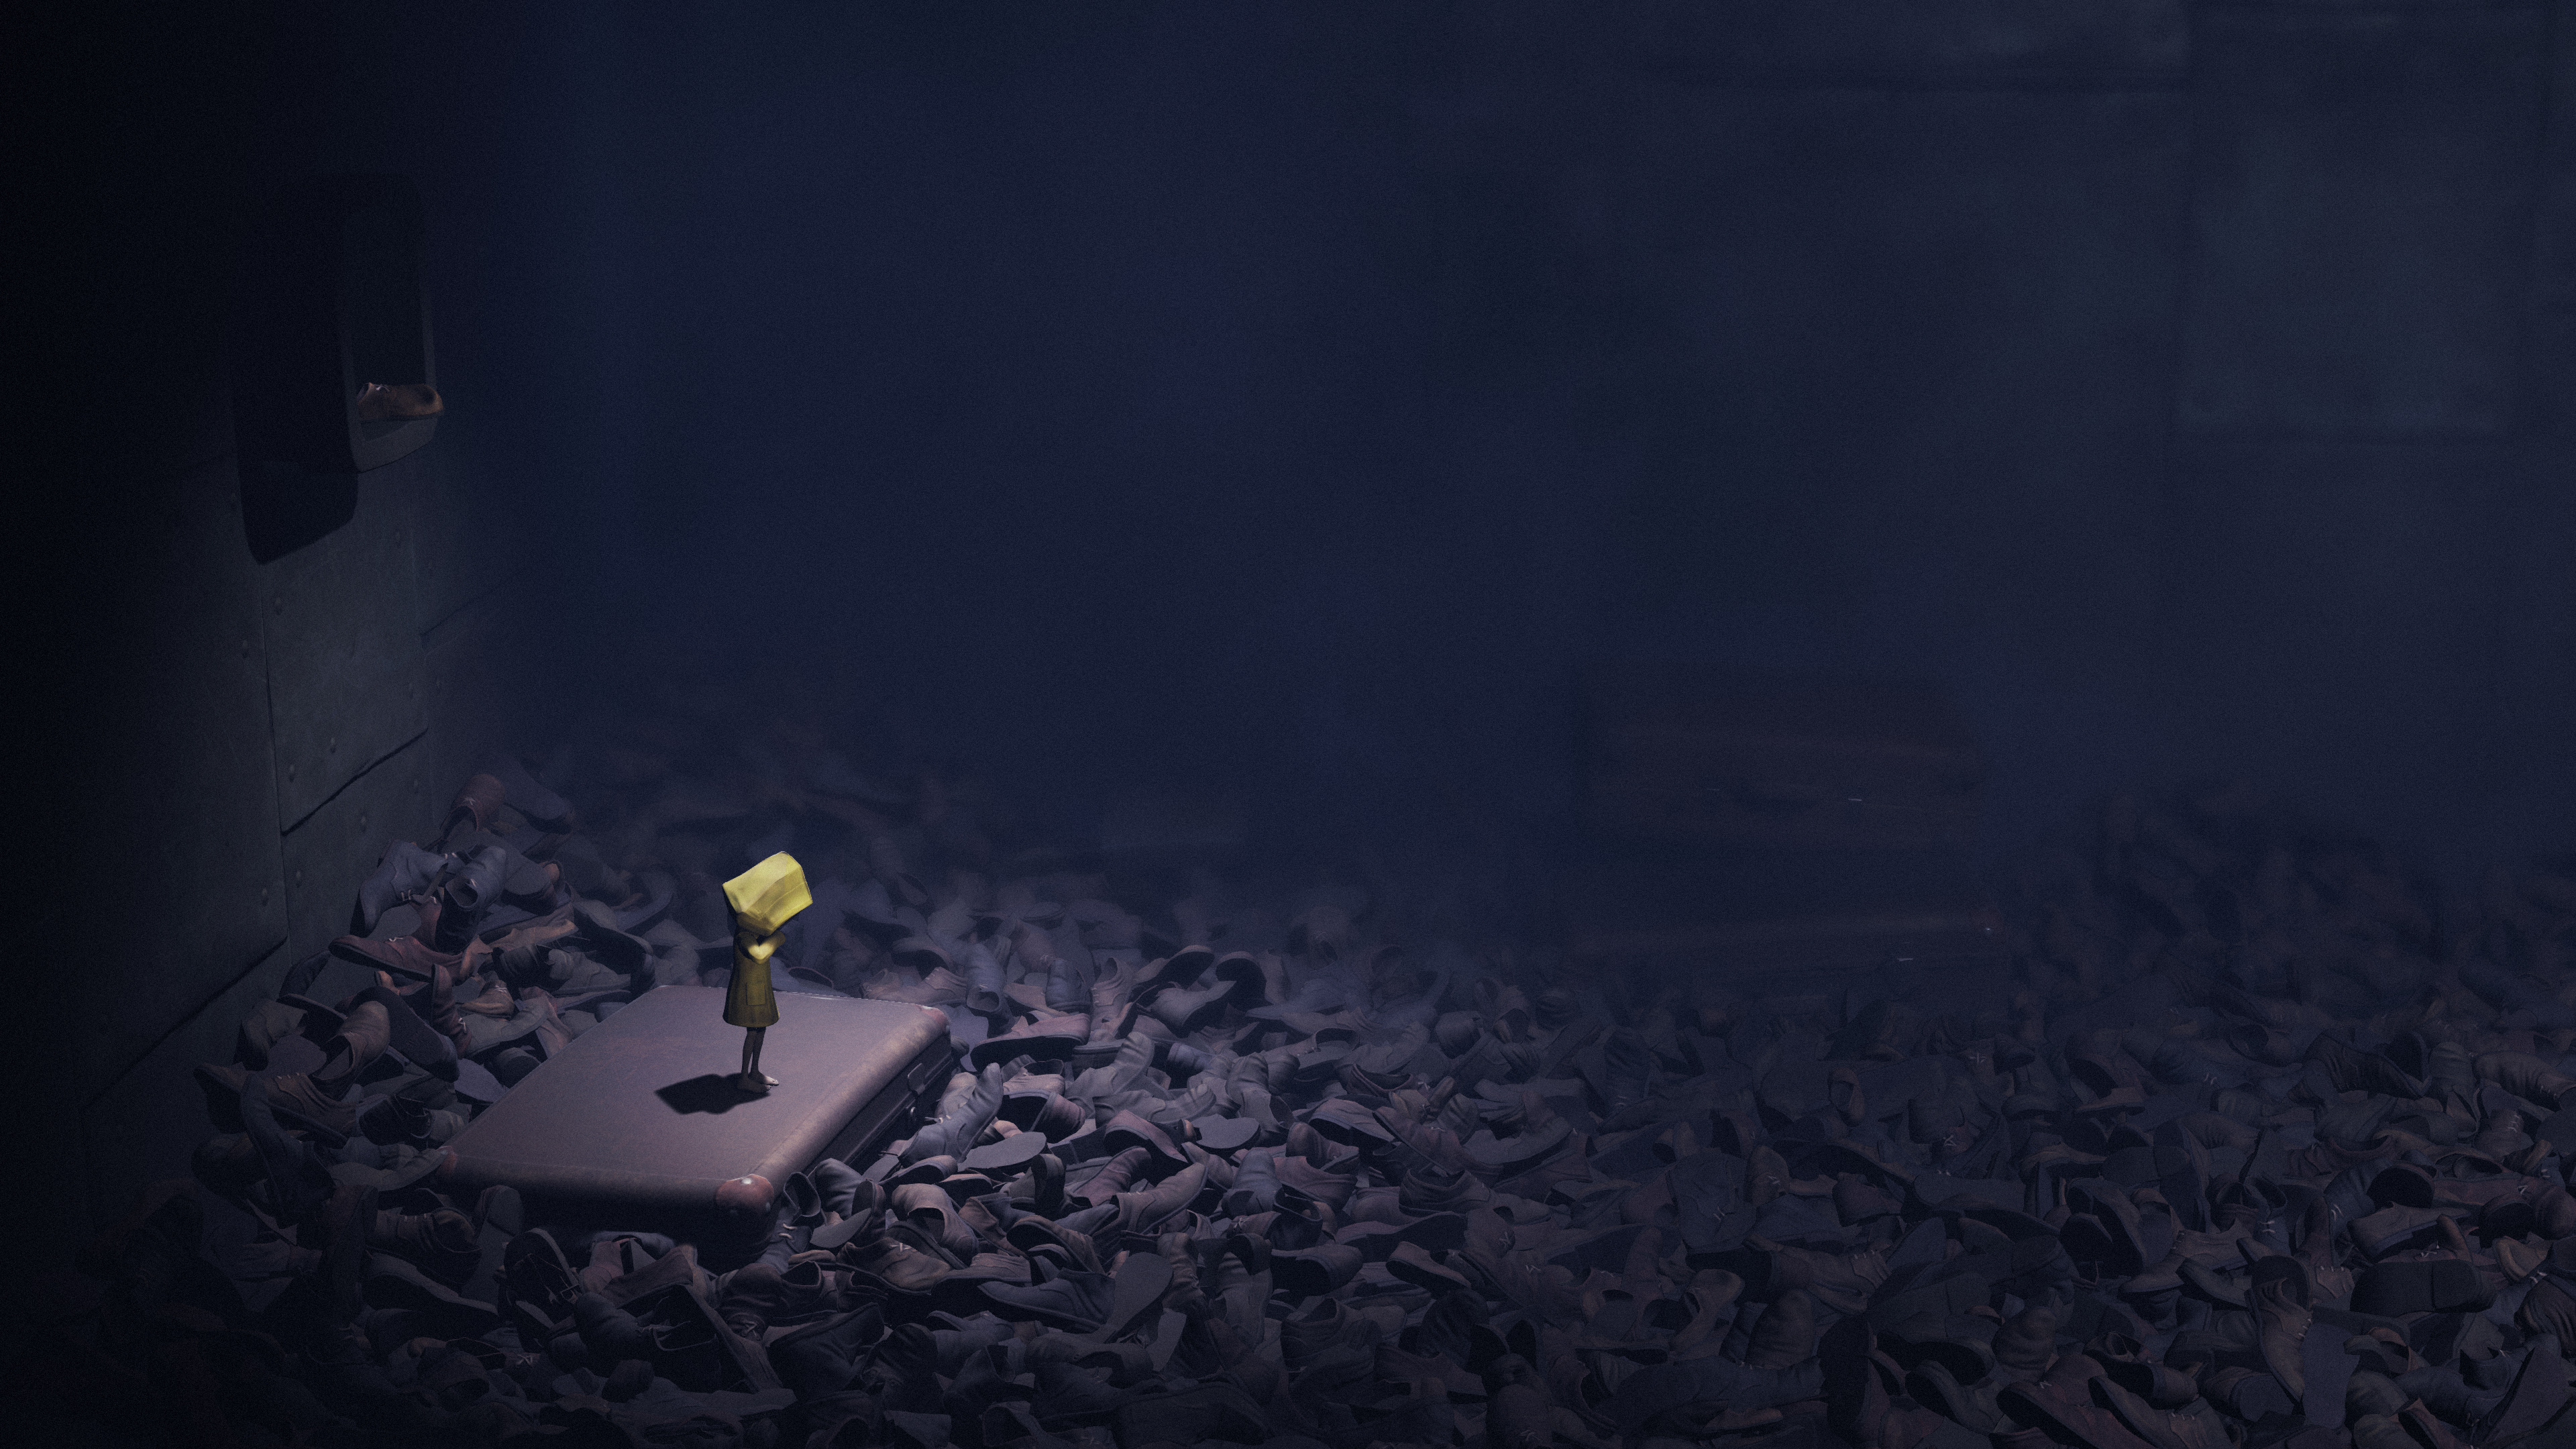 Little Nightmares might be the most impressive game at